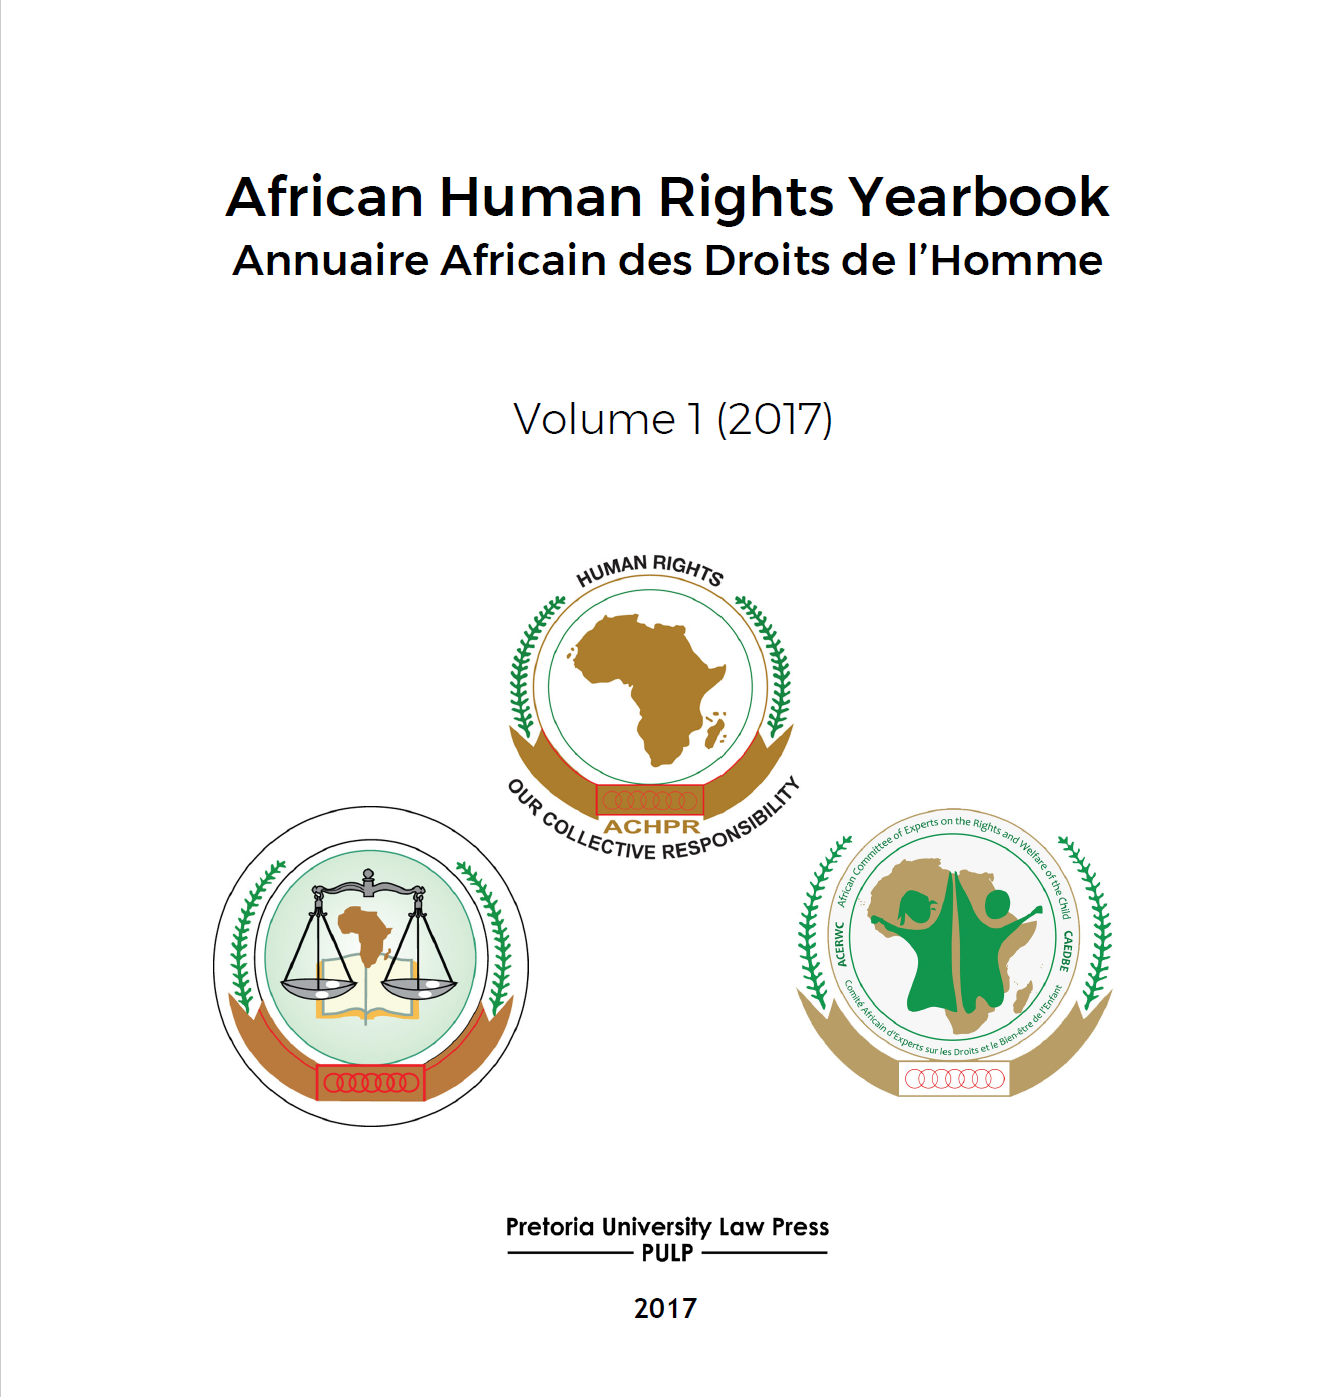 African Human Rights Yearbook 2017 Volume 1